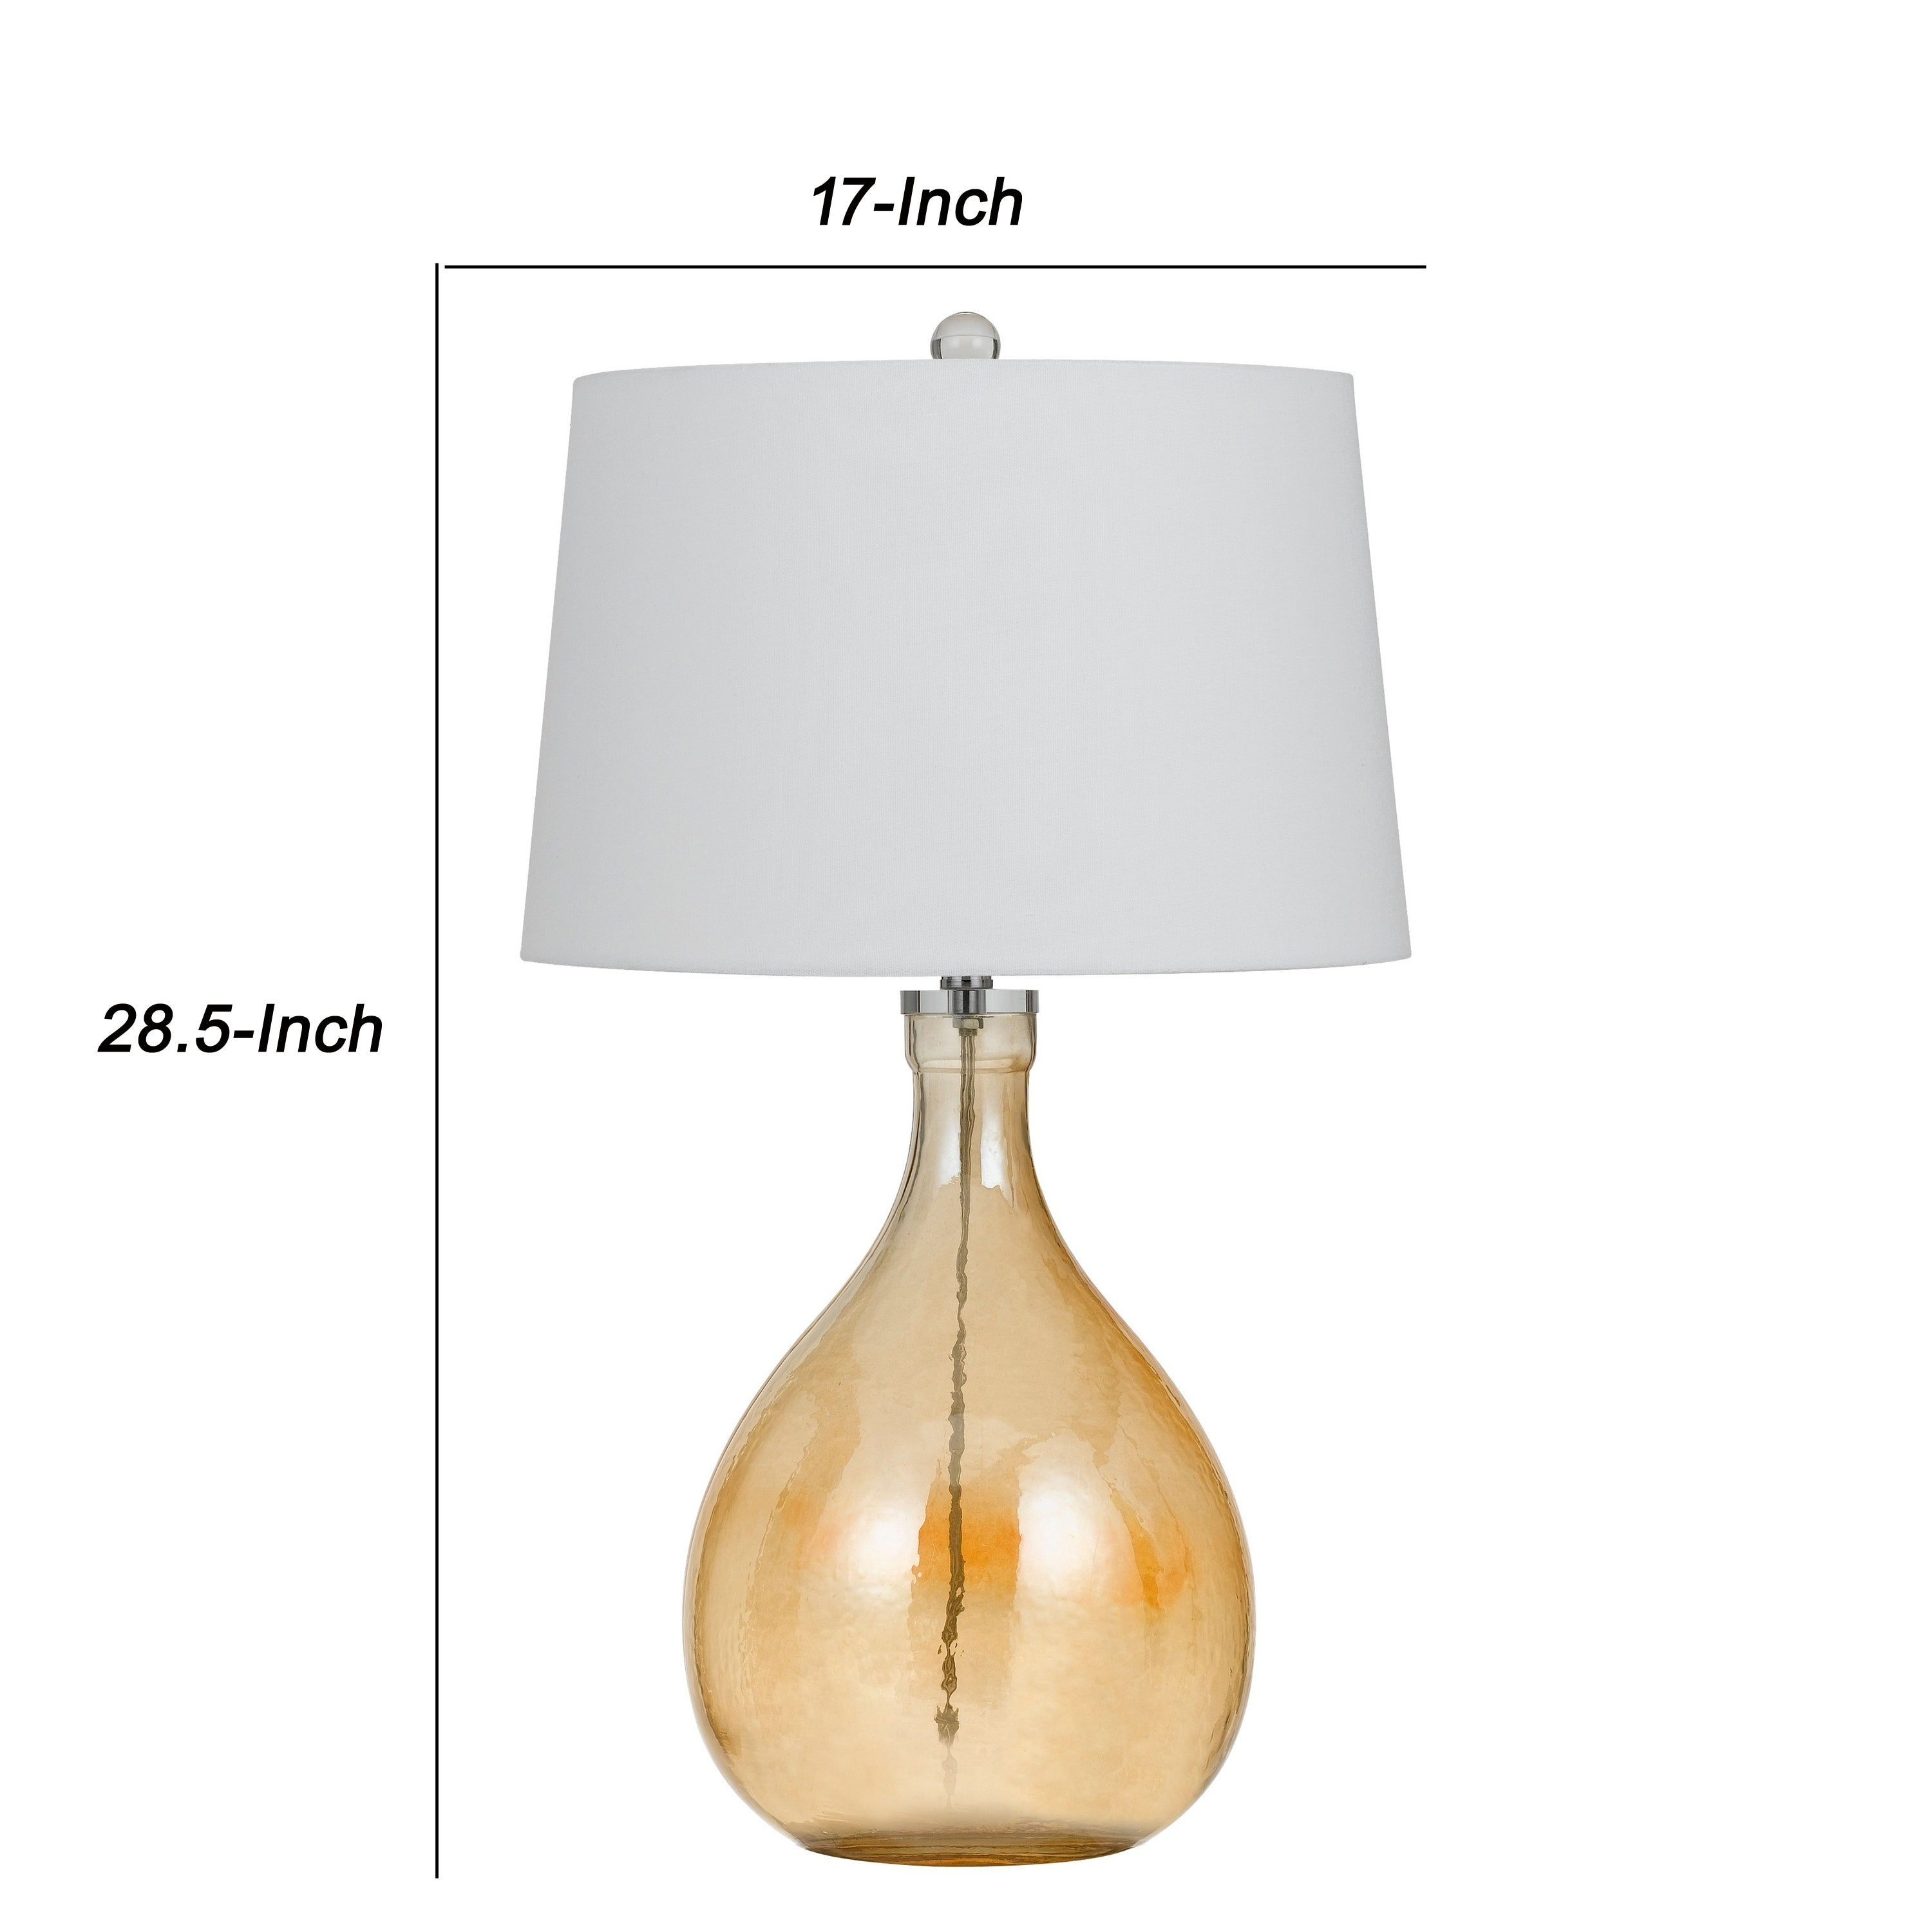 Shop Fabric Shade Table Lamp With Bellied Glass Base White And Orange On Sale Overstock 31681483